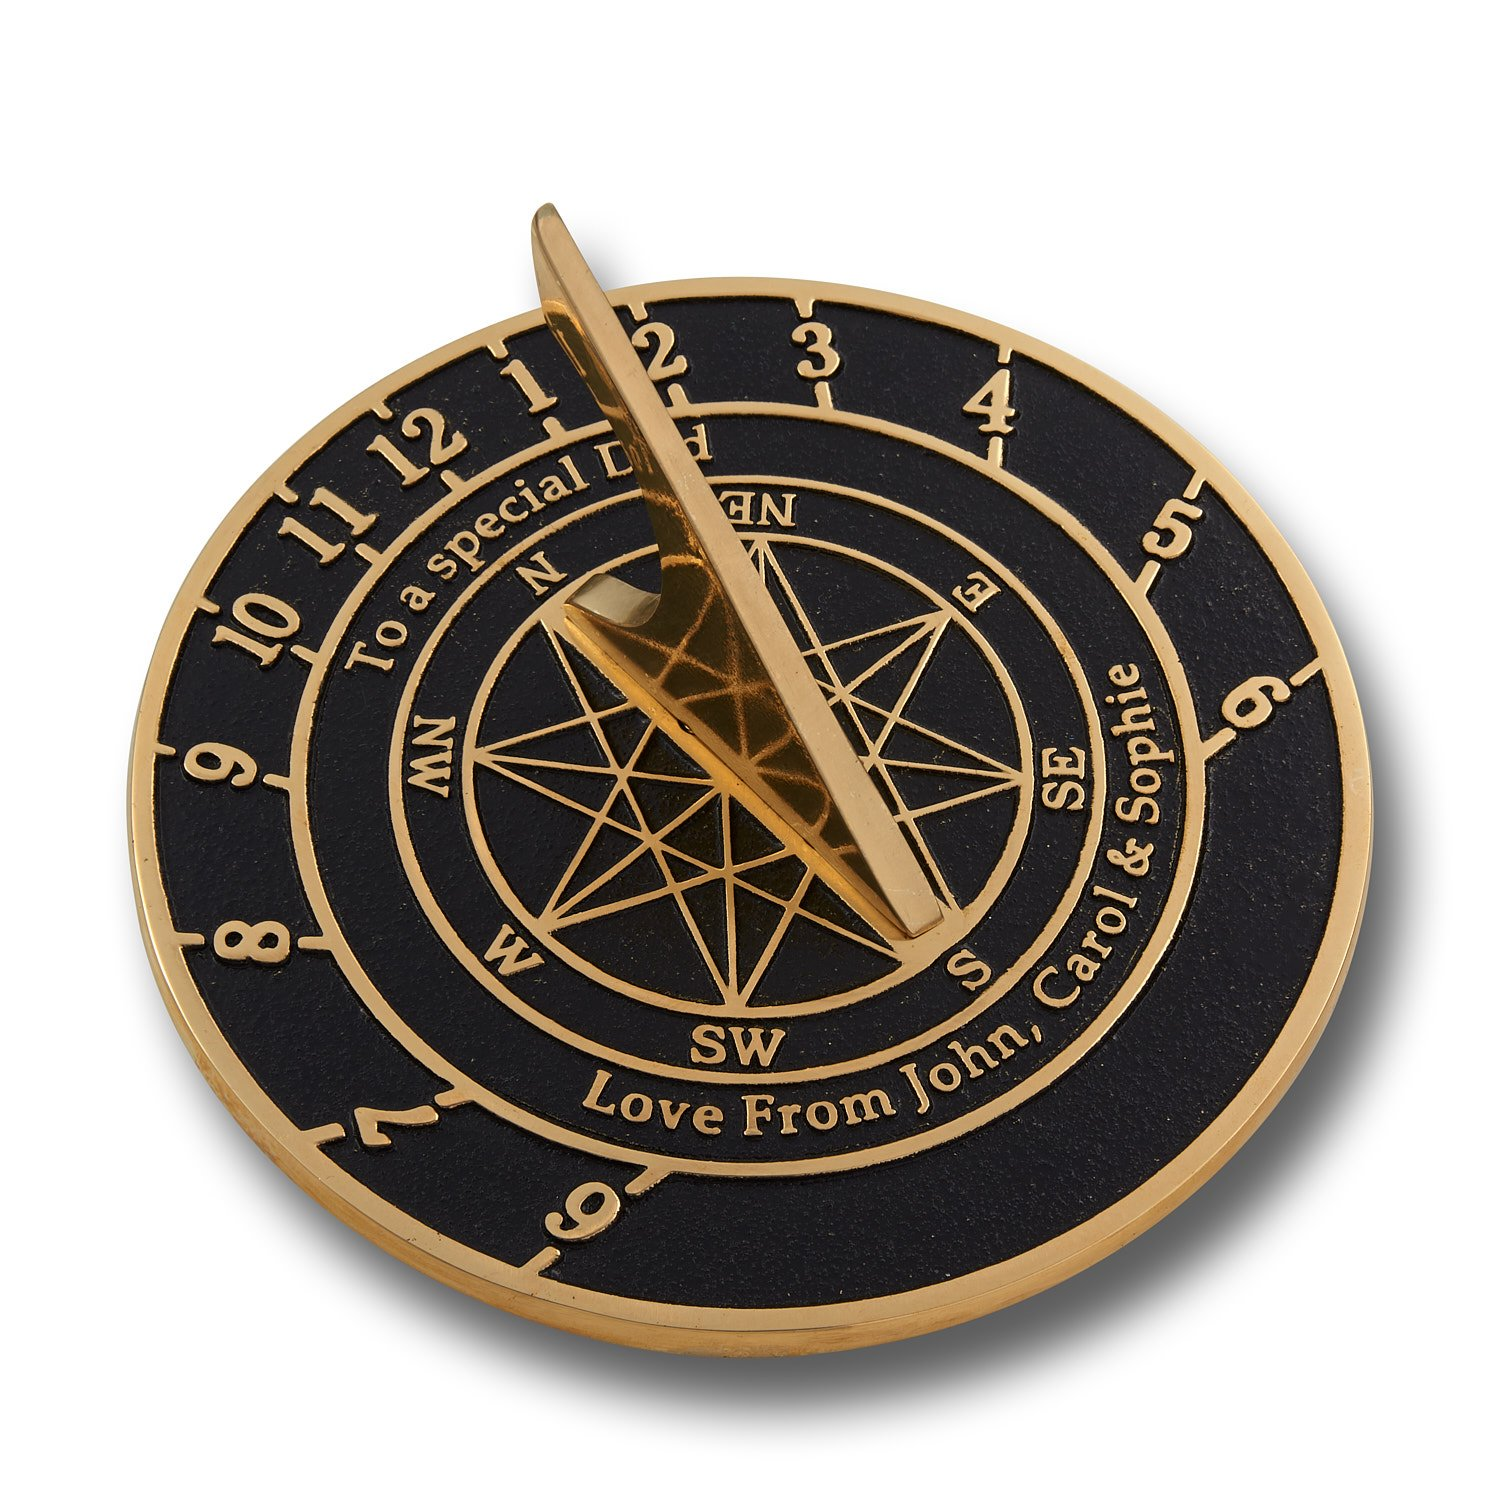 The Metal Foundry Personalized Large Brass Sundial with Pedestal Gift. This Unique Gift Idea for Him Or Her is Cast with Your Message and Will Make The Perfect Present for Birthday Or Christmas